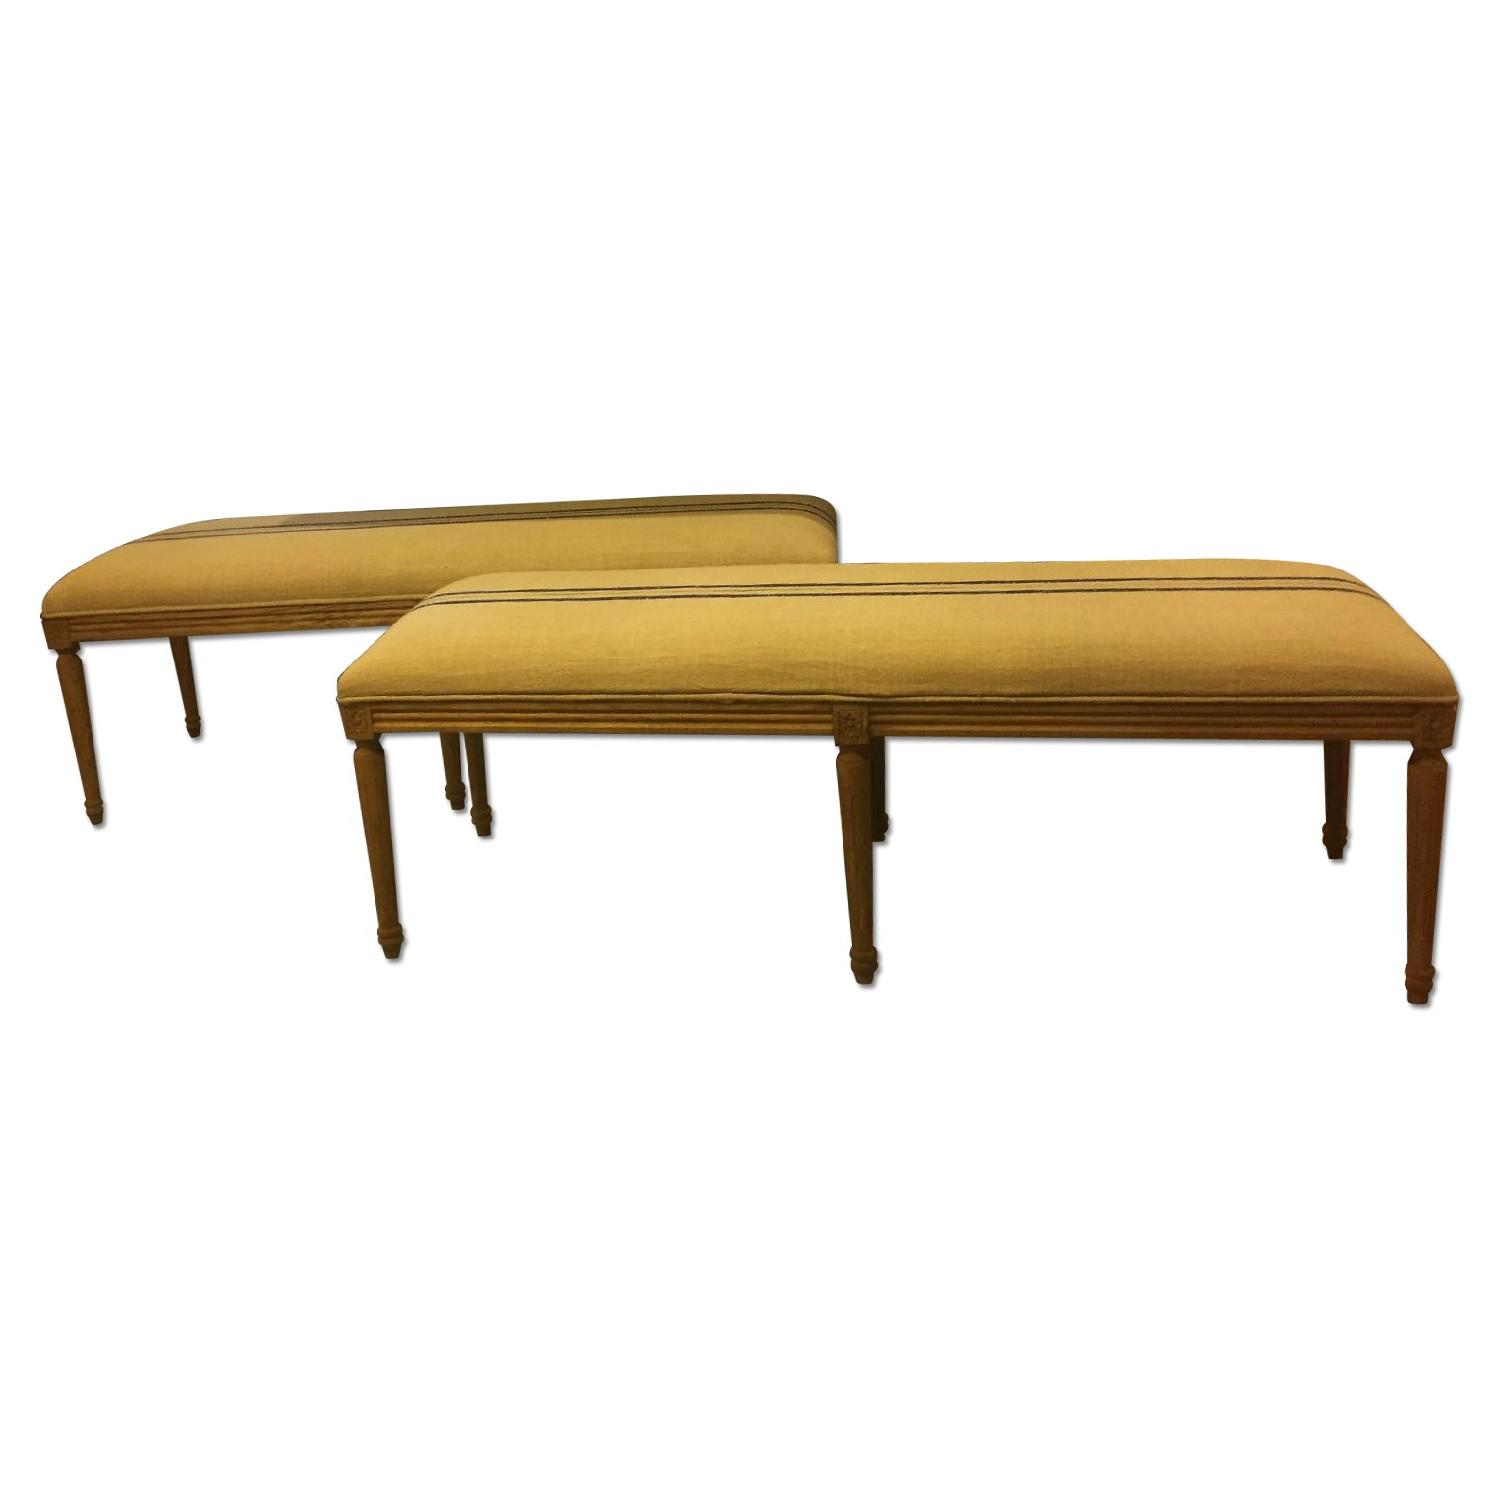 Louis XVI Style Dining Benches - image-0